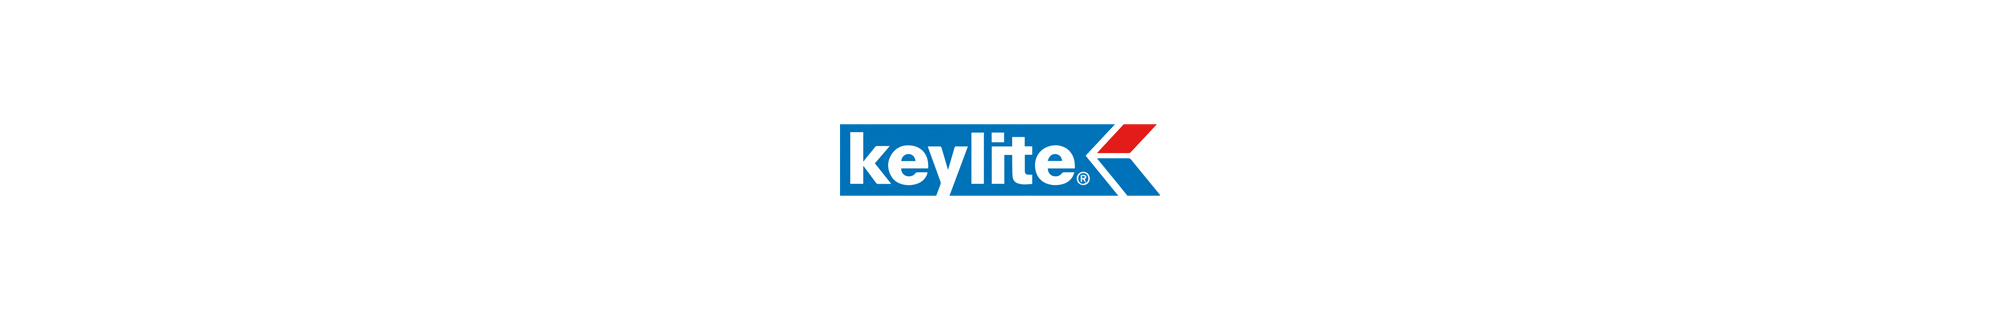 Keylite, rooflights, roof windows, domes